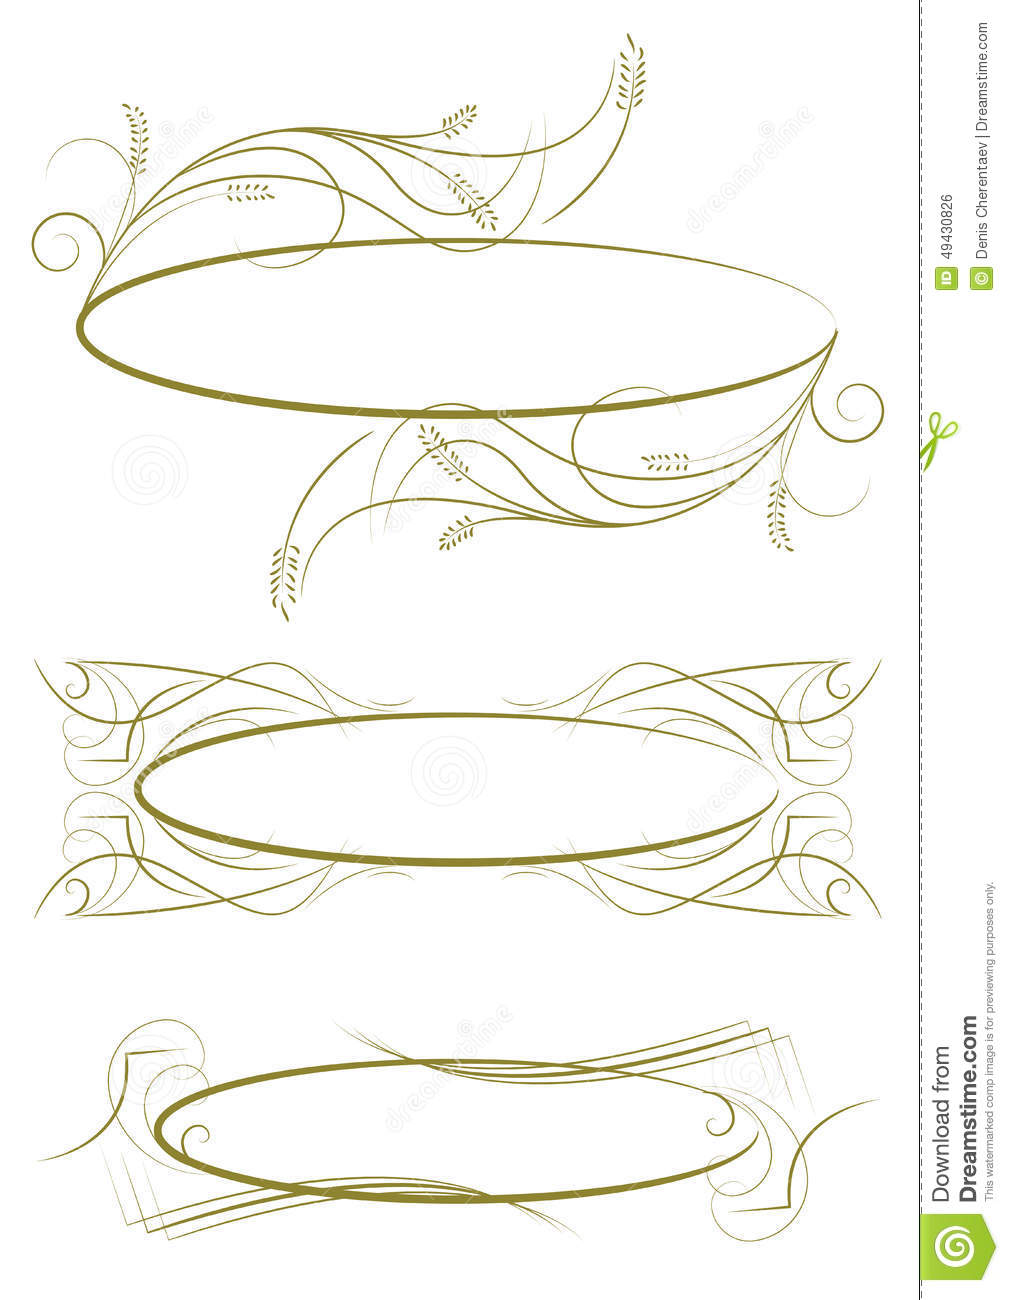 Exquisite Ornamental And Page Decoration Designs